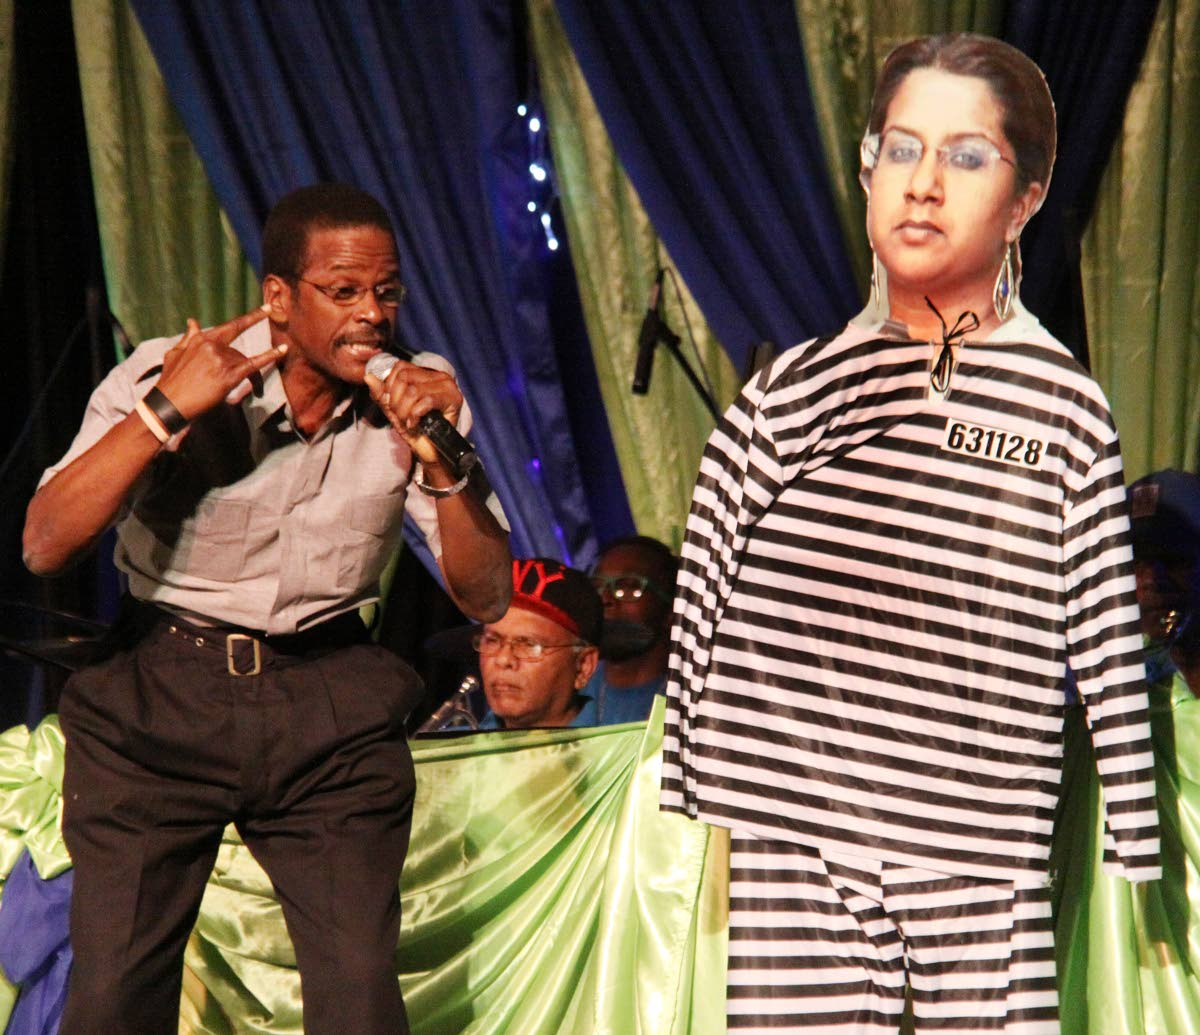 INSEPARABLE: Bonnie B performs Inseparable at the opening of Kaiso House, Park Street, Port of Spain. PHOTO BY ANGELO MARCELLE